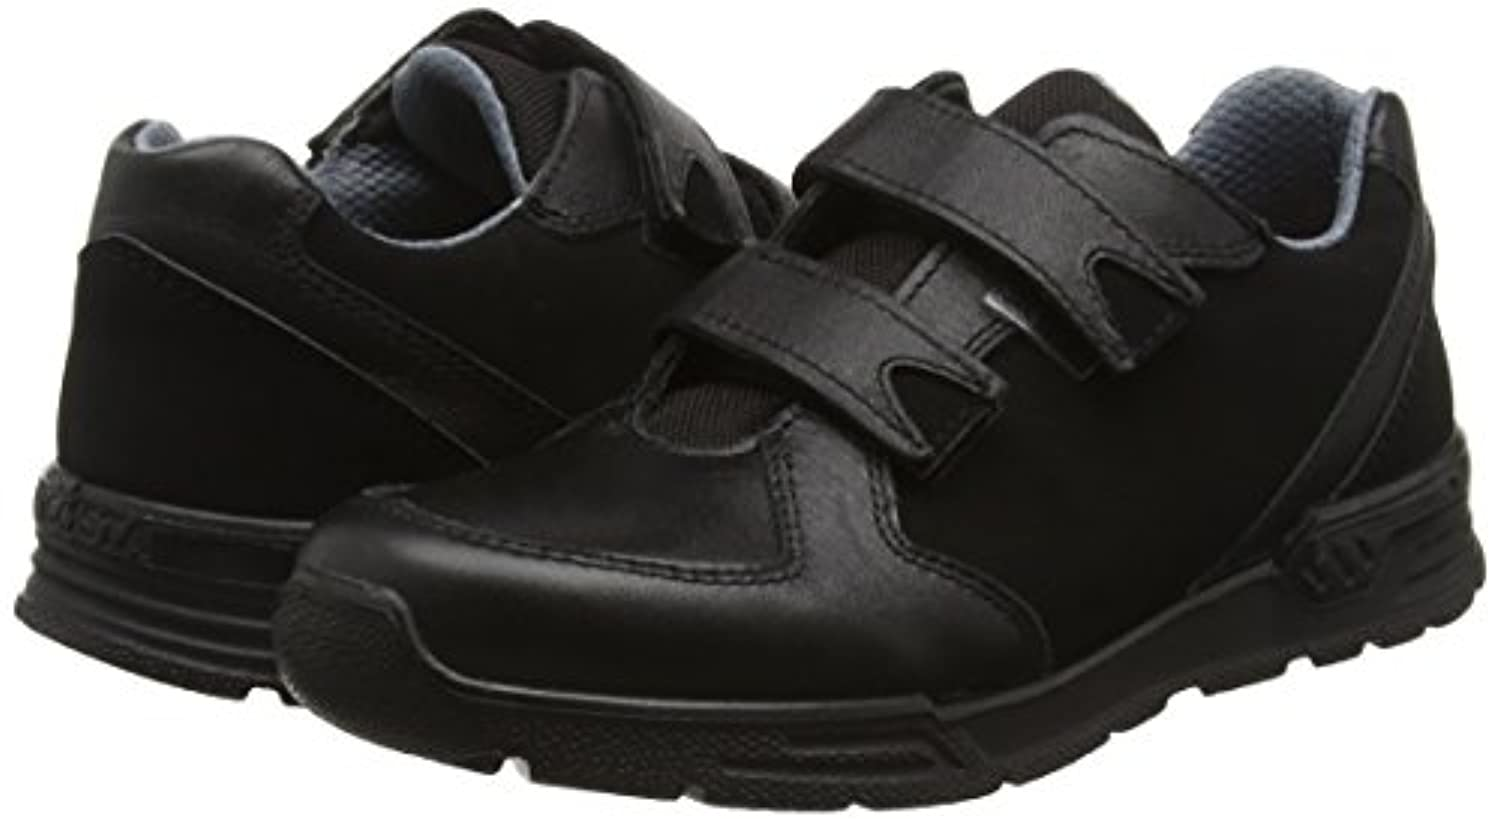 Ricosta Boys' Fris Loafers, Black (Black 097), 8 Child UK 26 EU